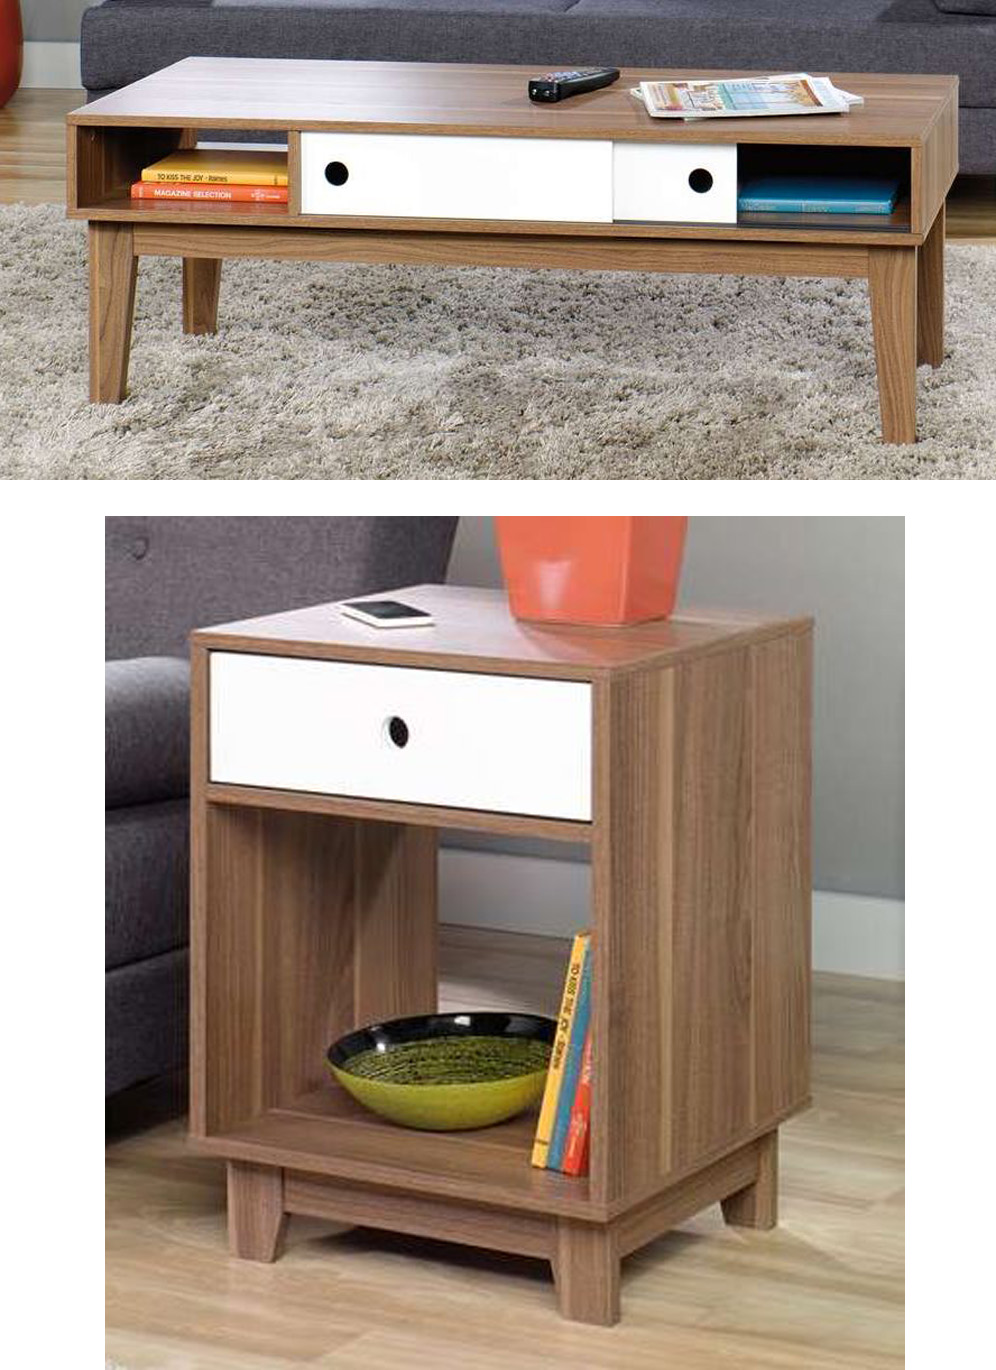 sauder furniture inspired accents modern walnut coffee table end tables liberty collection used oak farmhouse kitchen dog cage ideas rustic country dhp parsons stanley american